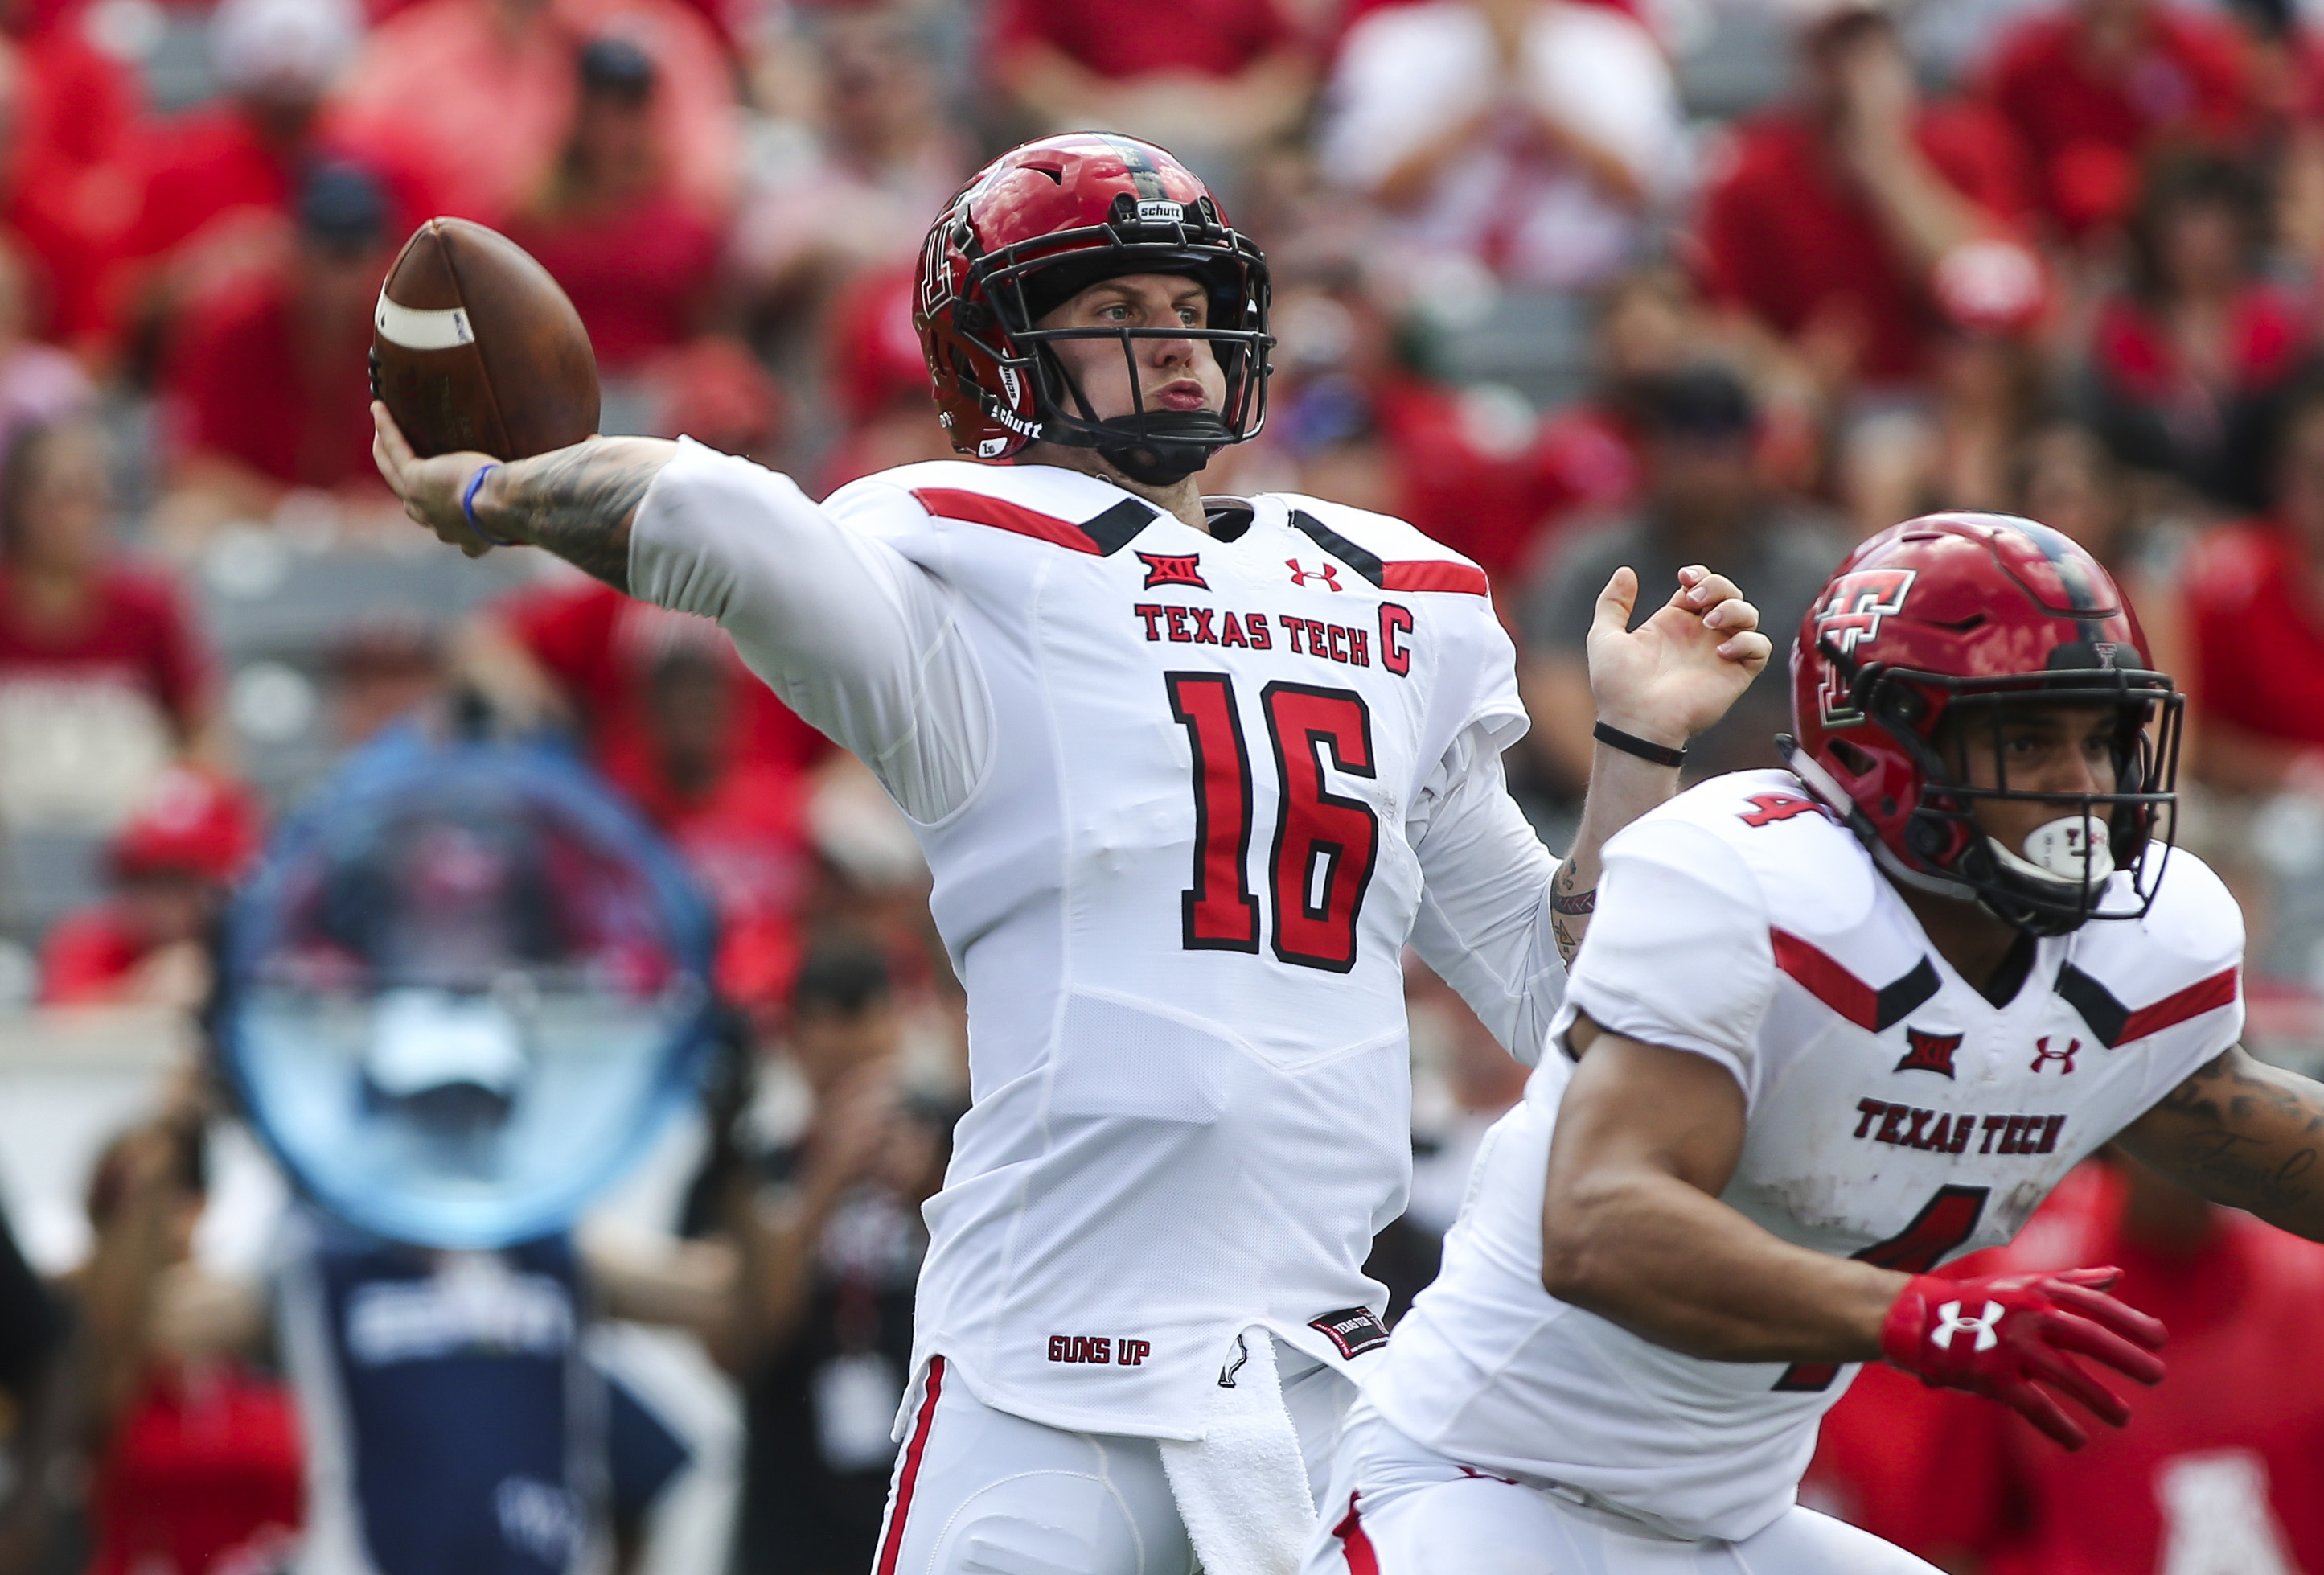 Sep 23, 2017; Houston, TX, USA; Texas Tech Red Raiders quarterback Nic Shimonek (16) throws a pass for a touchdown during the third quarter against the Houston Cougars at TDECU Stadium. Mandatory Credit: Troy Taormina-USA TODAY Sports